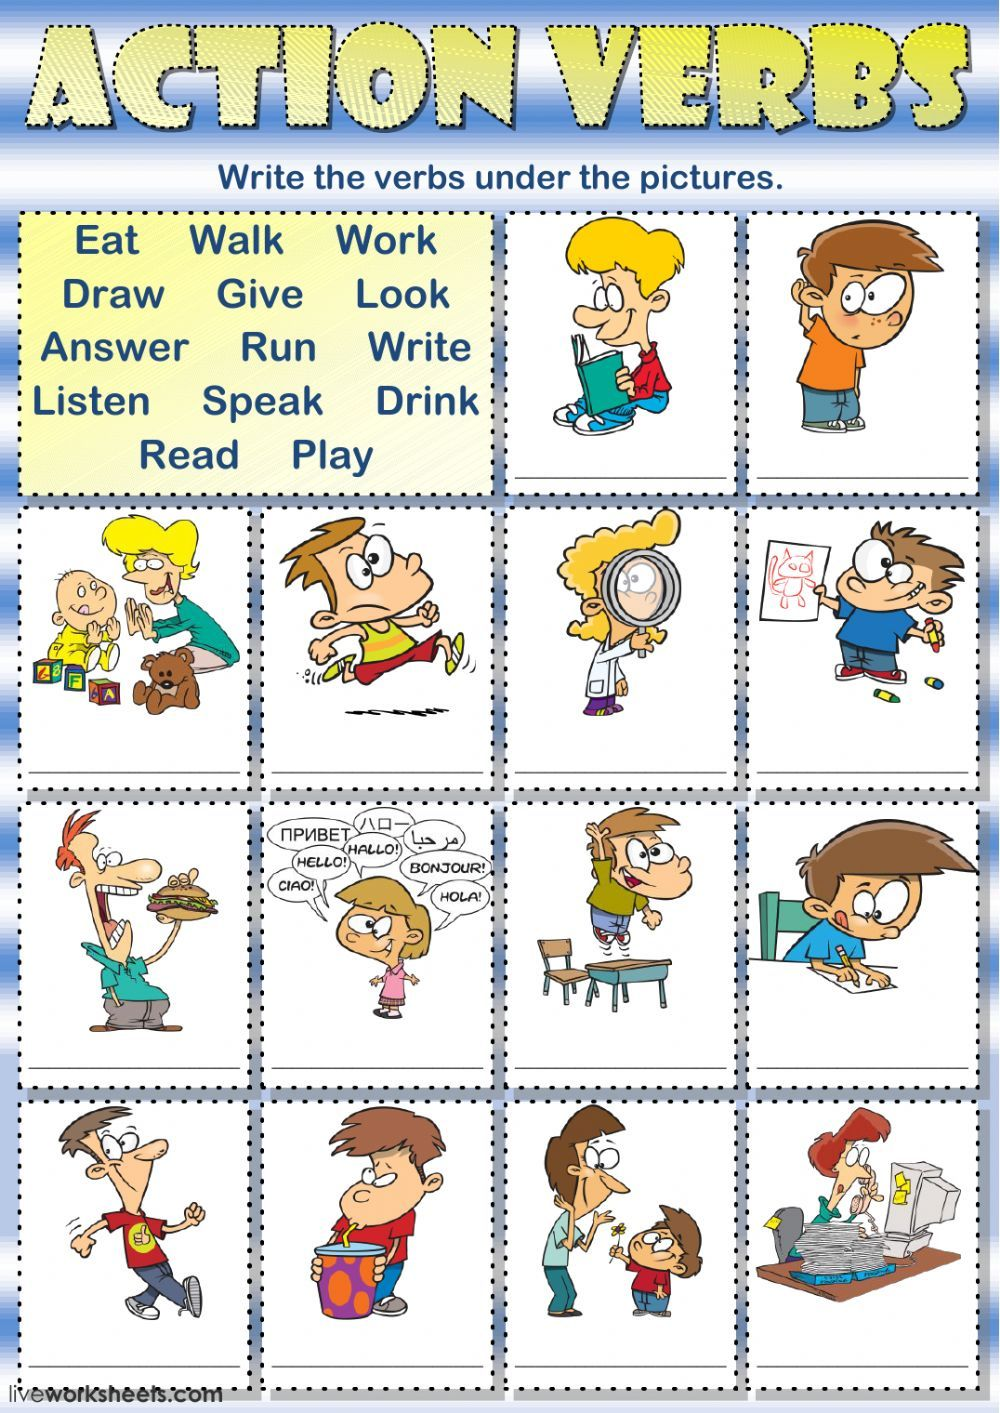 Action Verbs Interactive And Downloadable Worksheet You Can Do The Exercises Online Or Download Th Action Verbs English Activities For Kids Classroom Language [ 1413 x 1000 Pixel ]